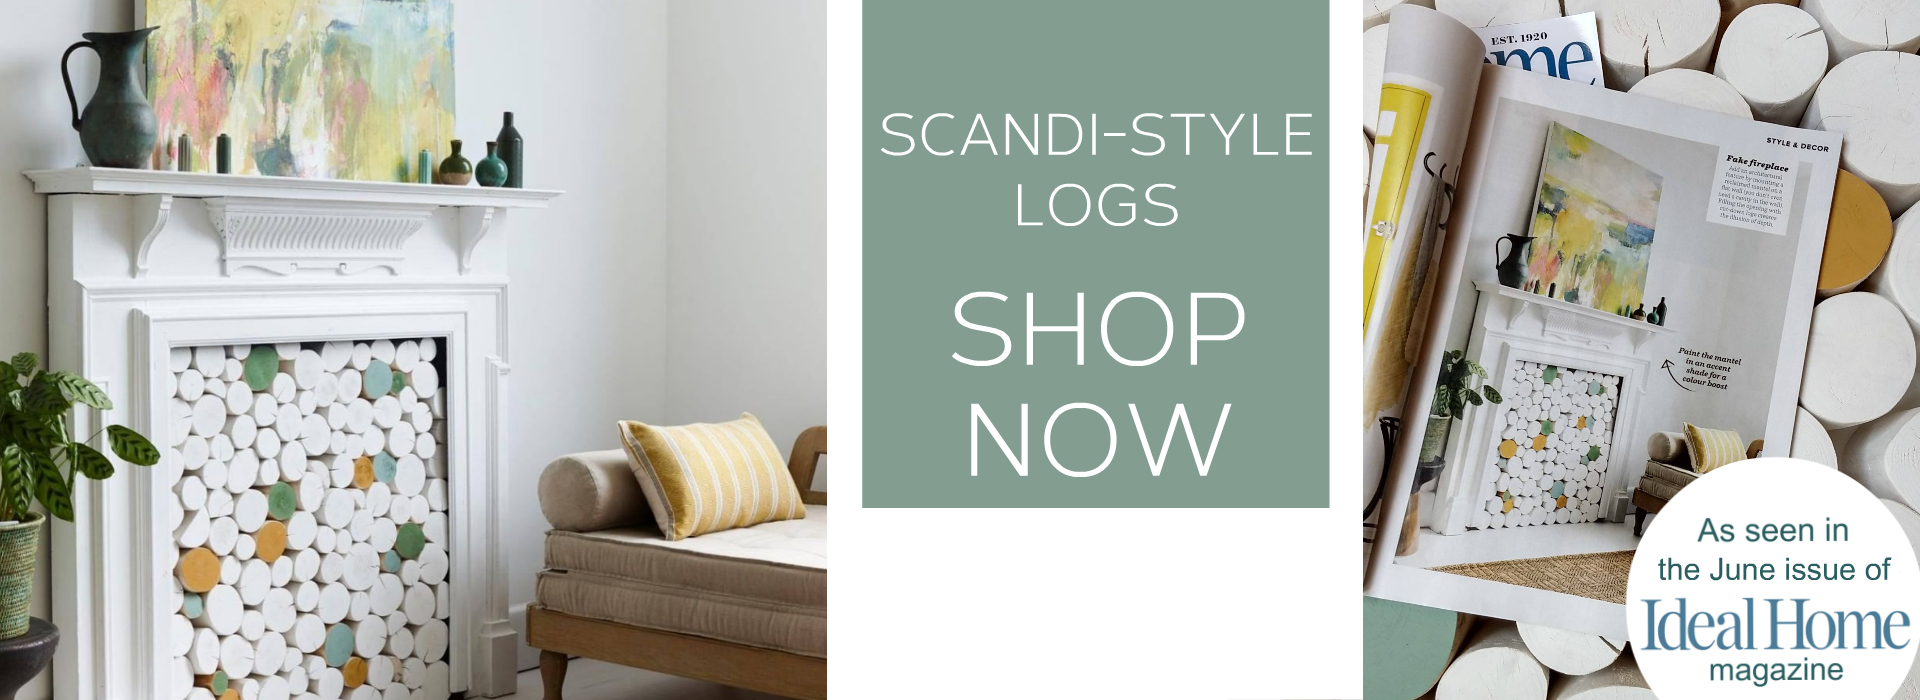 Decorative round stacking logs to stack and display in an  empty fireplace or unused alcove.